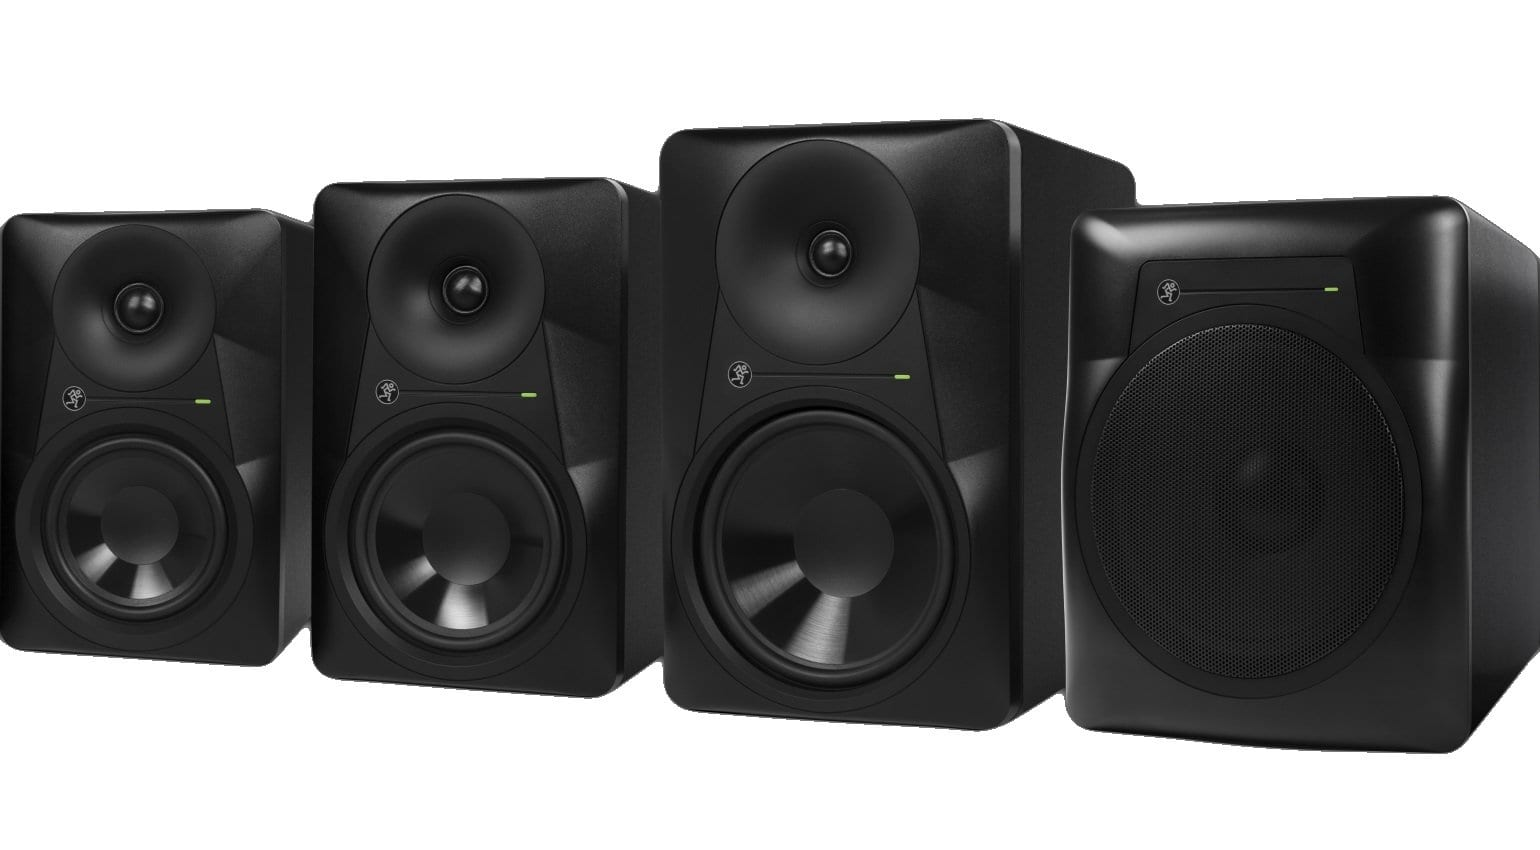 mackie refreshes mr studio monitors with 39 acoustic space control 39. Black Bedroom Furniture Sets. Home Design Ideas